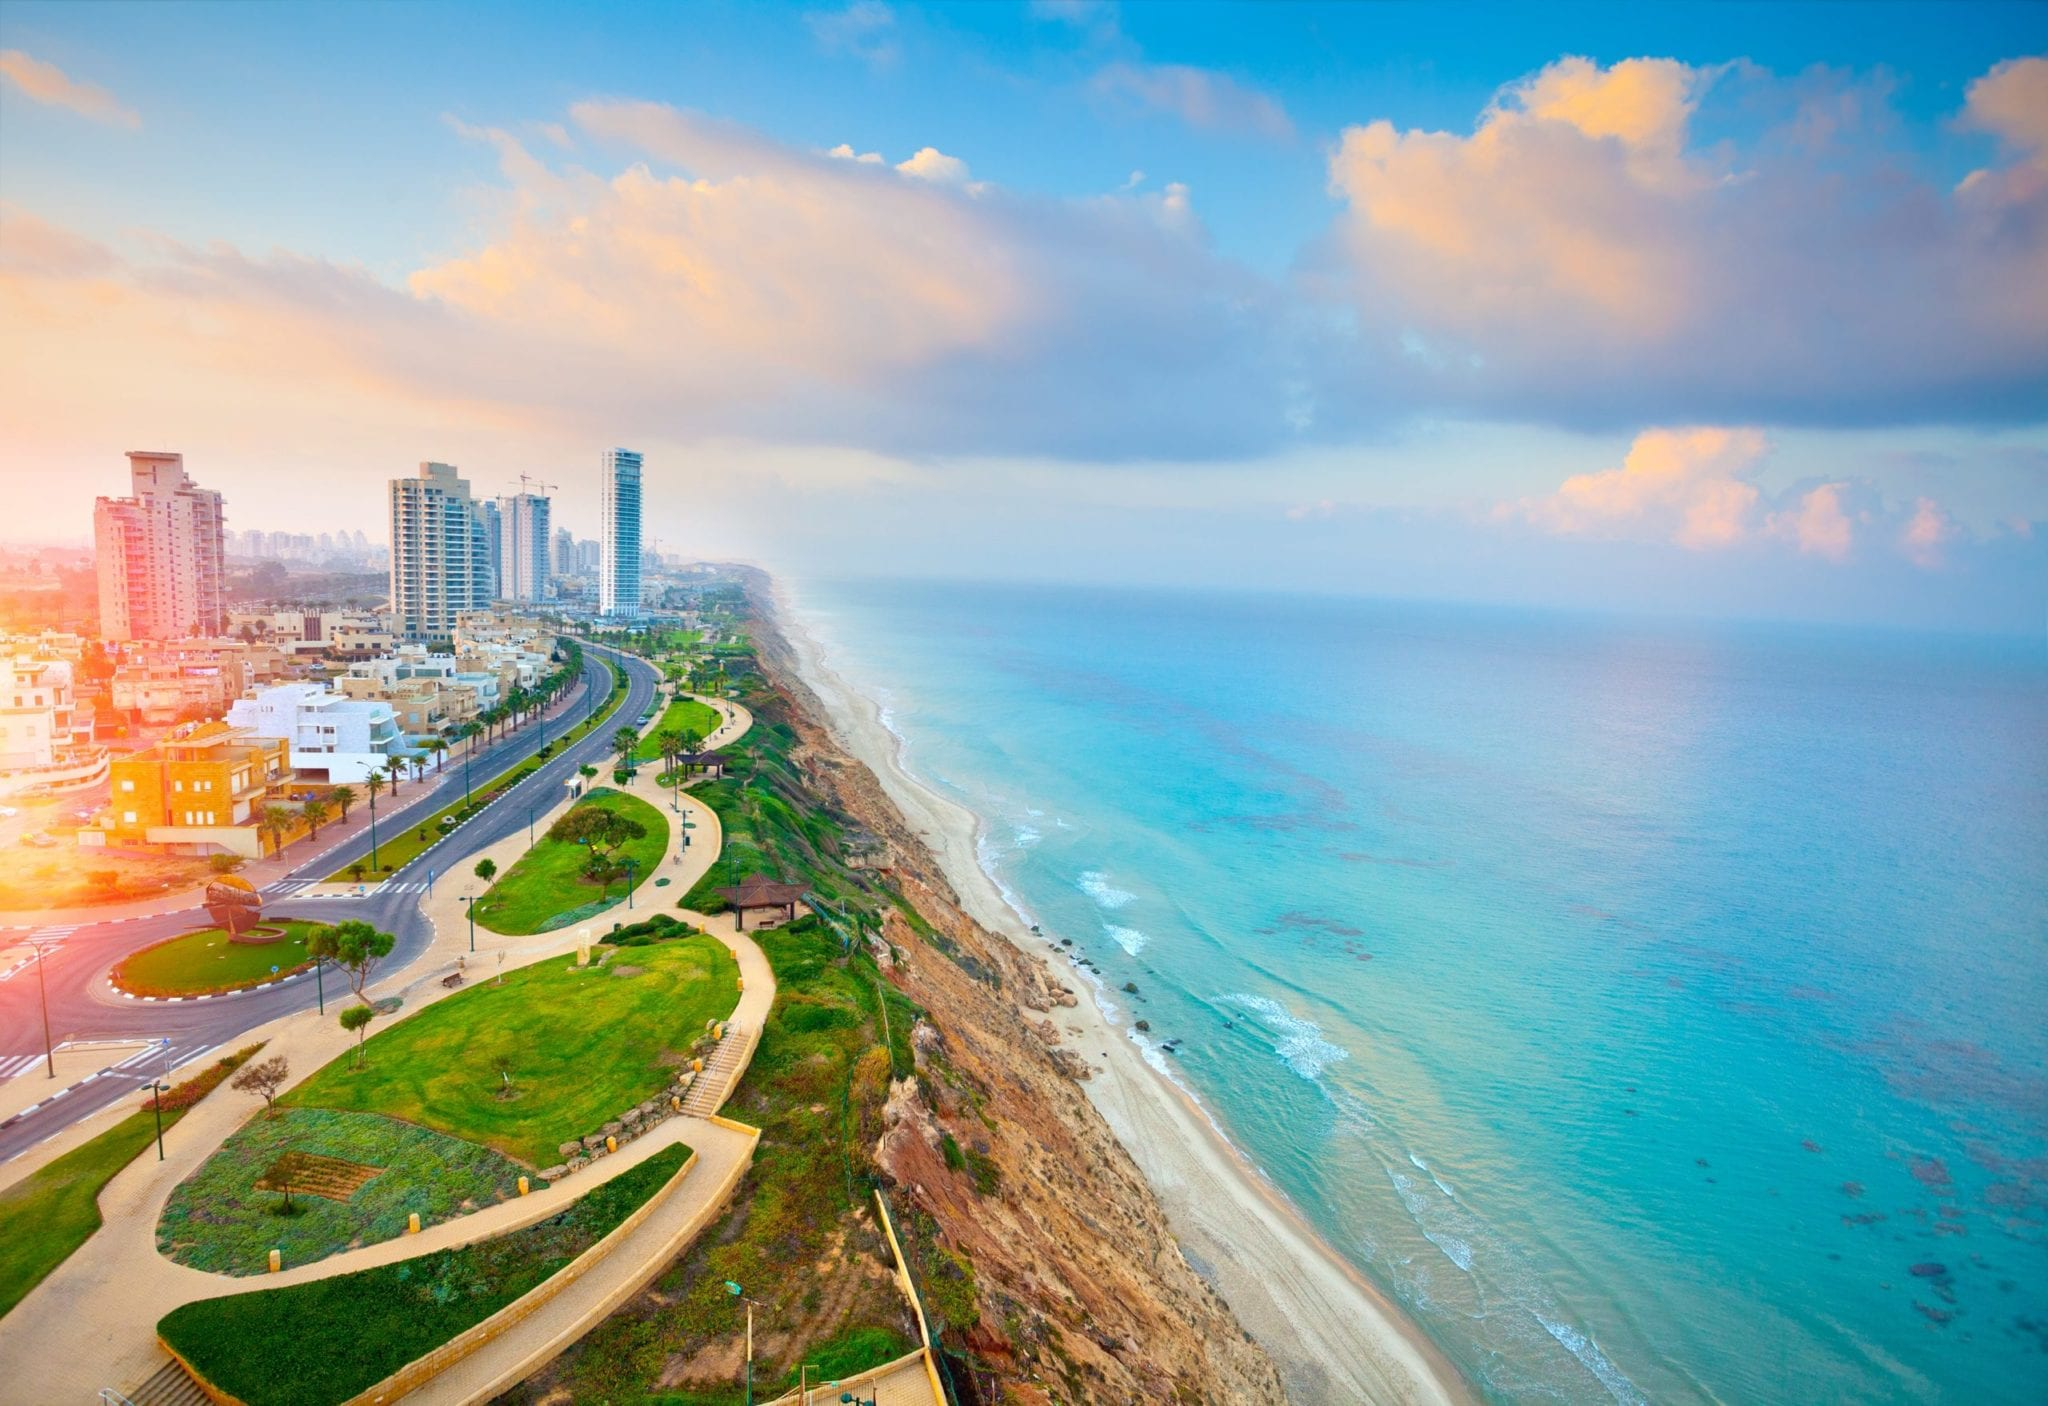 panoramic view of the netanya coastline